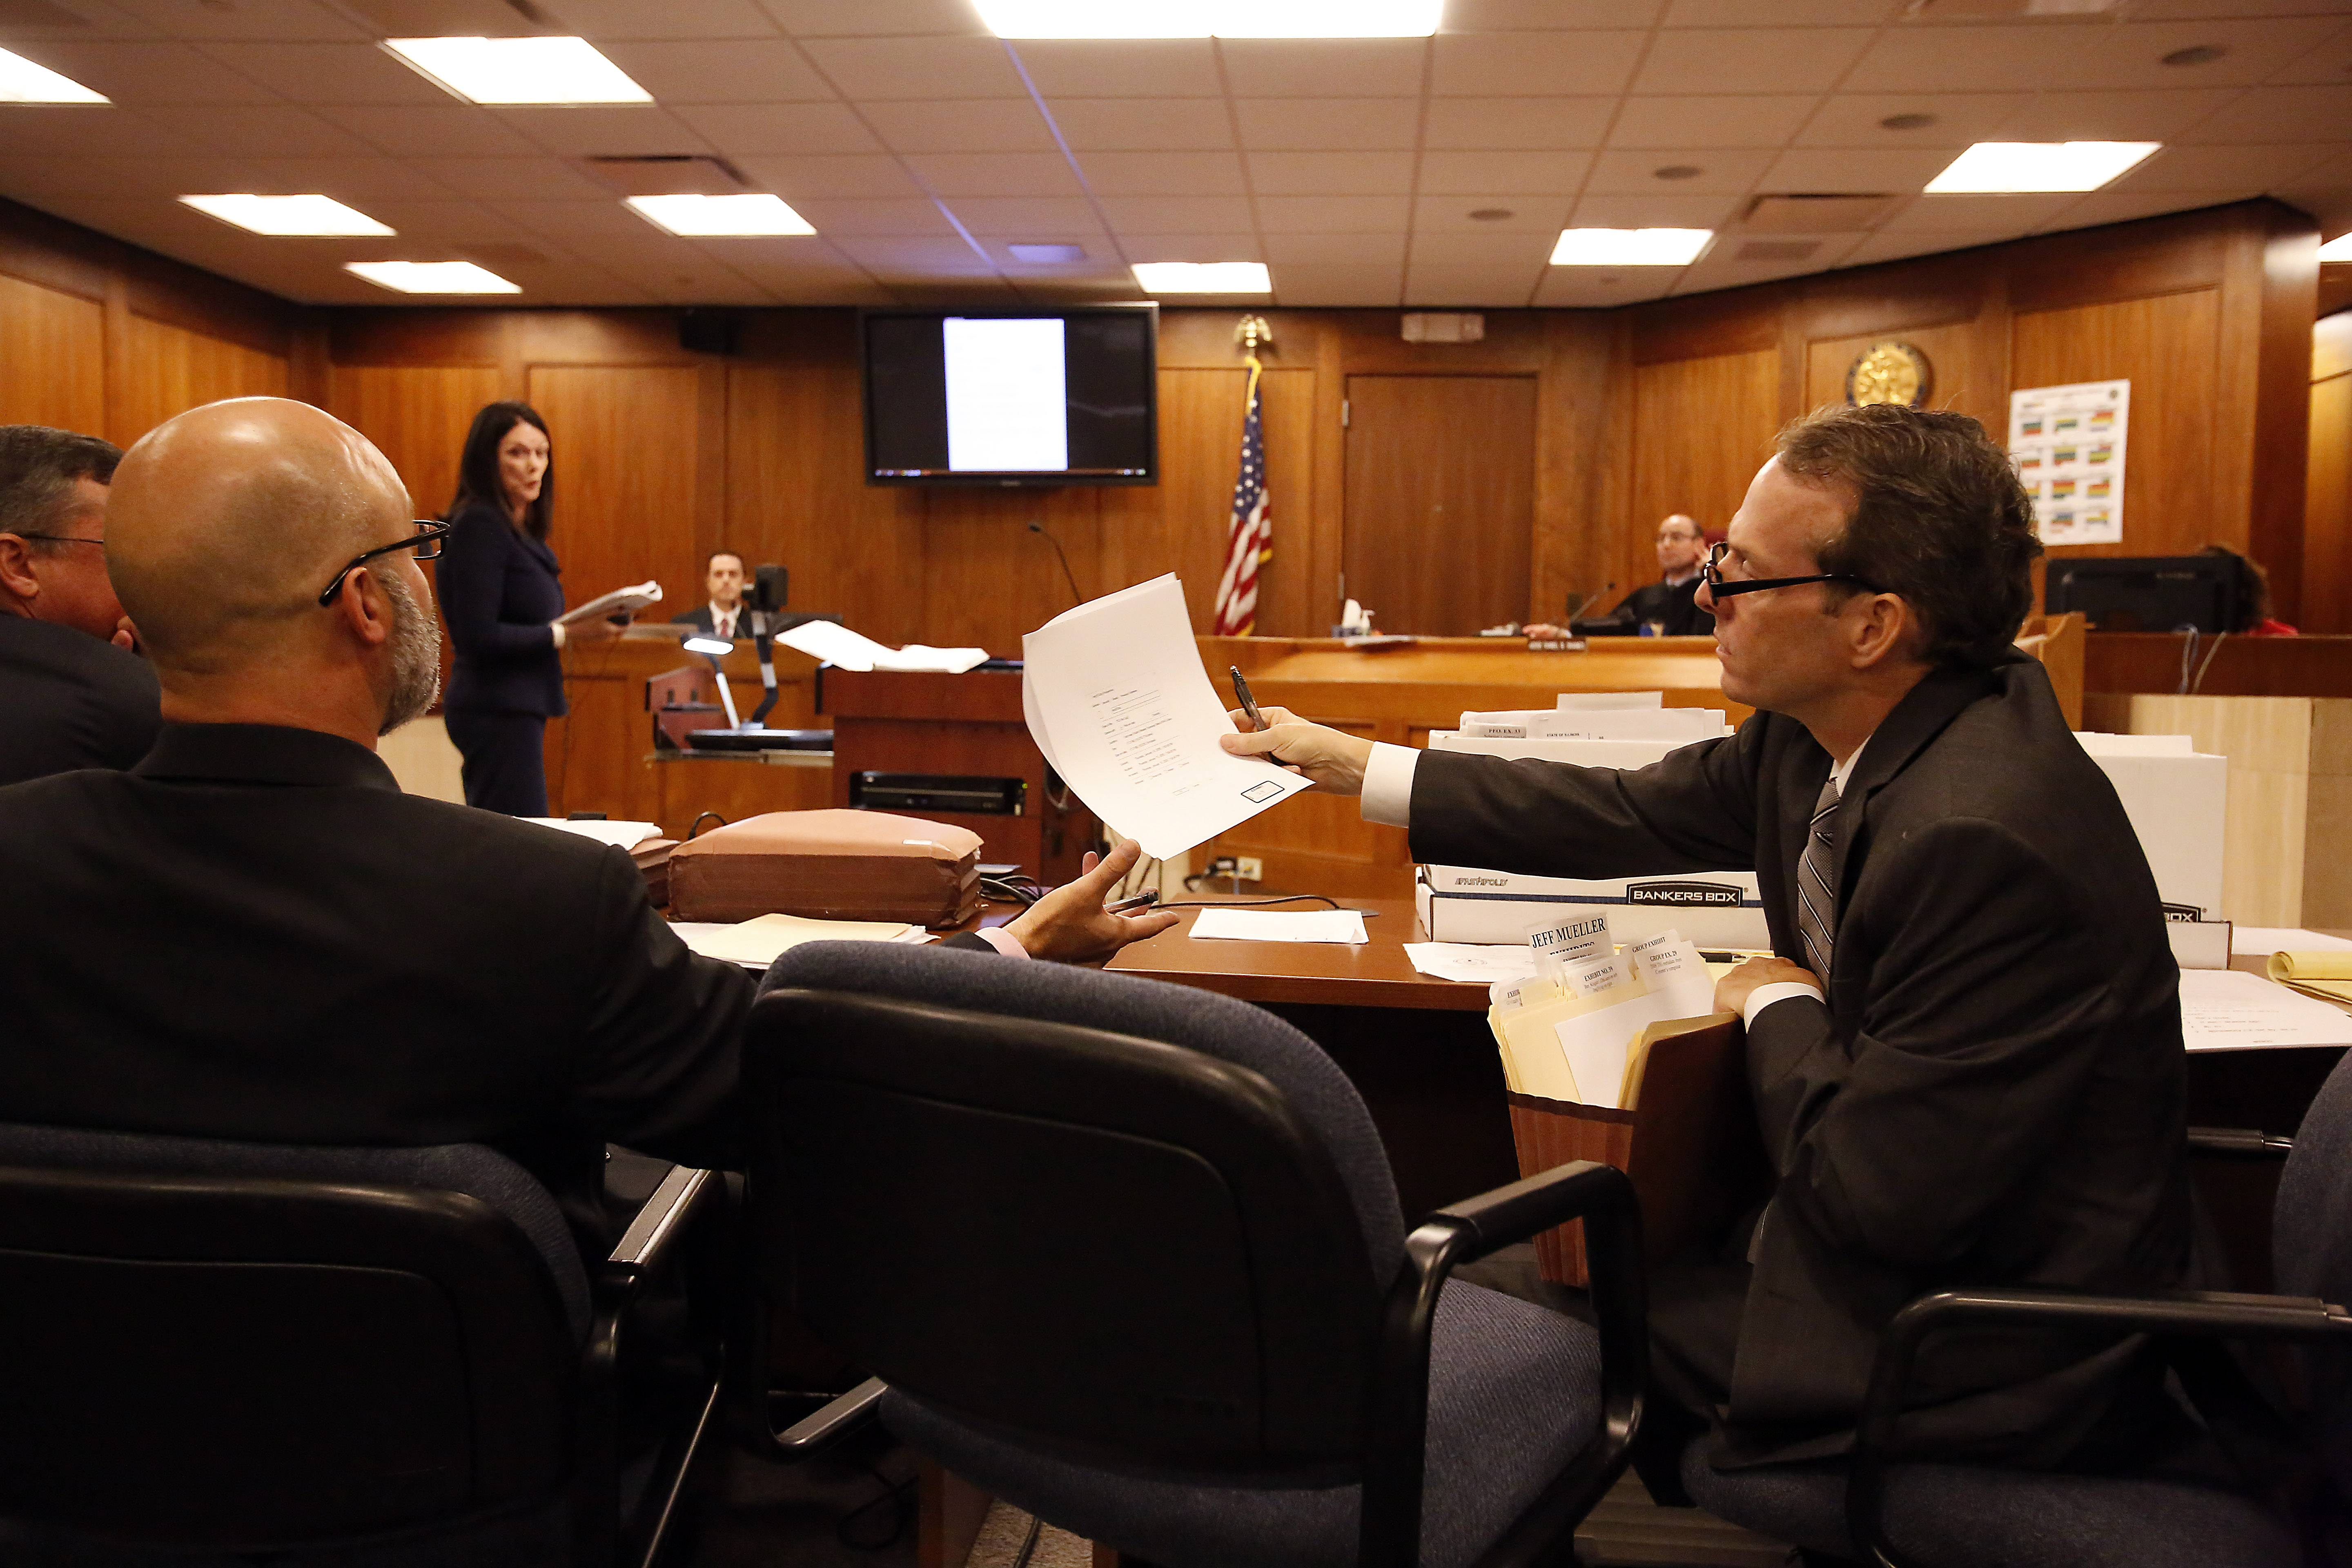 Defense attorney Douglas Johnson hands Lake County Assistant State's Attorney Steve Scheller papers during Friday's hearing to determine if Melissa Calusinski, 29, of Carpentersville, deserves a new trial in the death of a toddler at a Lincolnshire day care center.